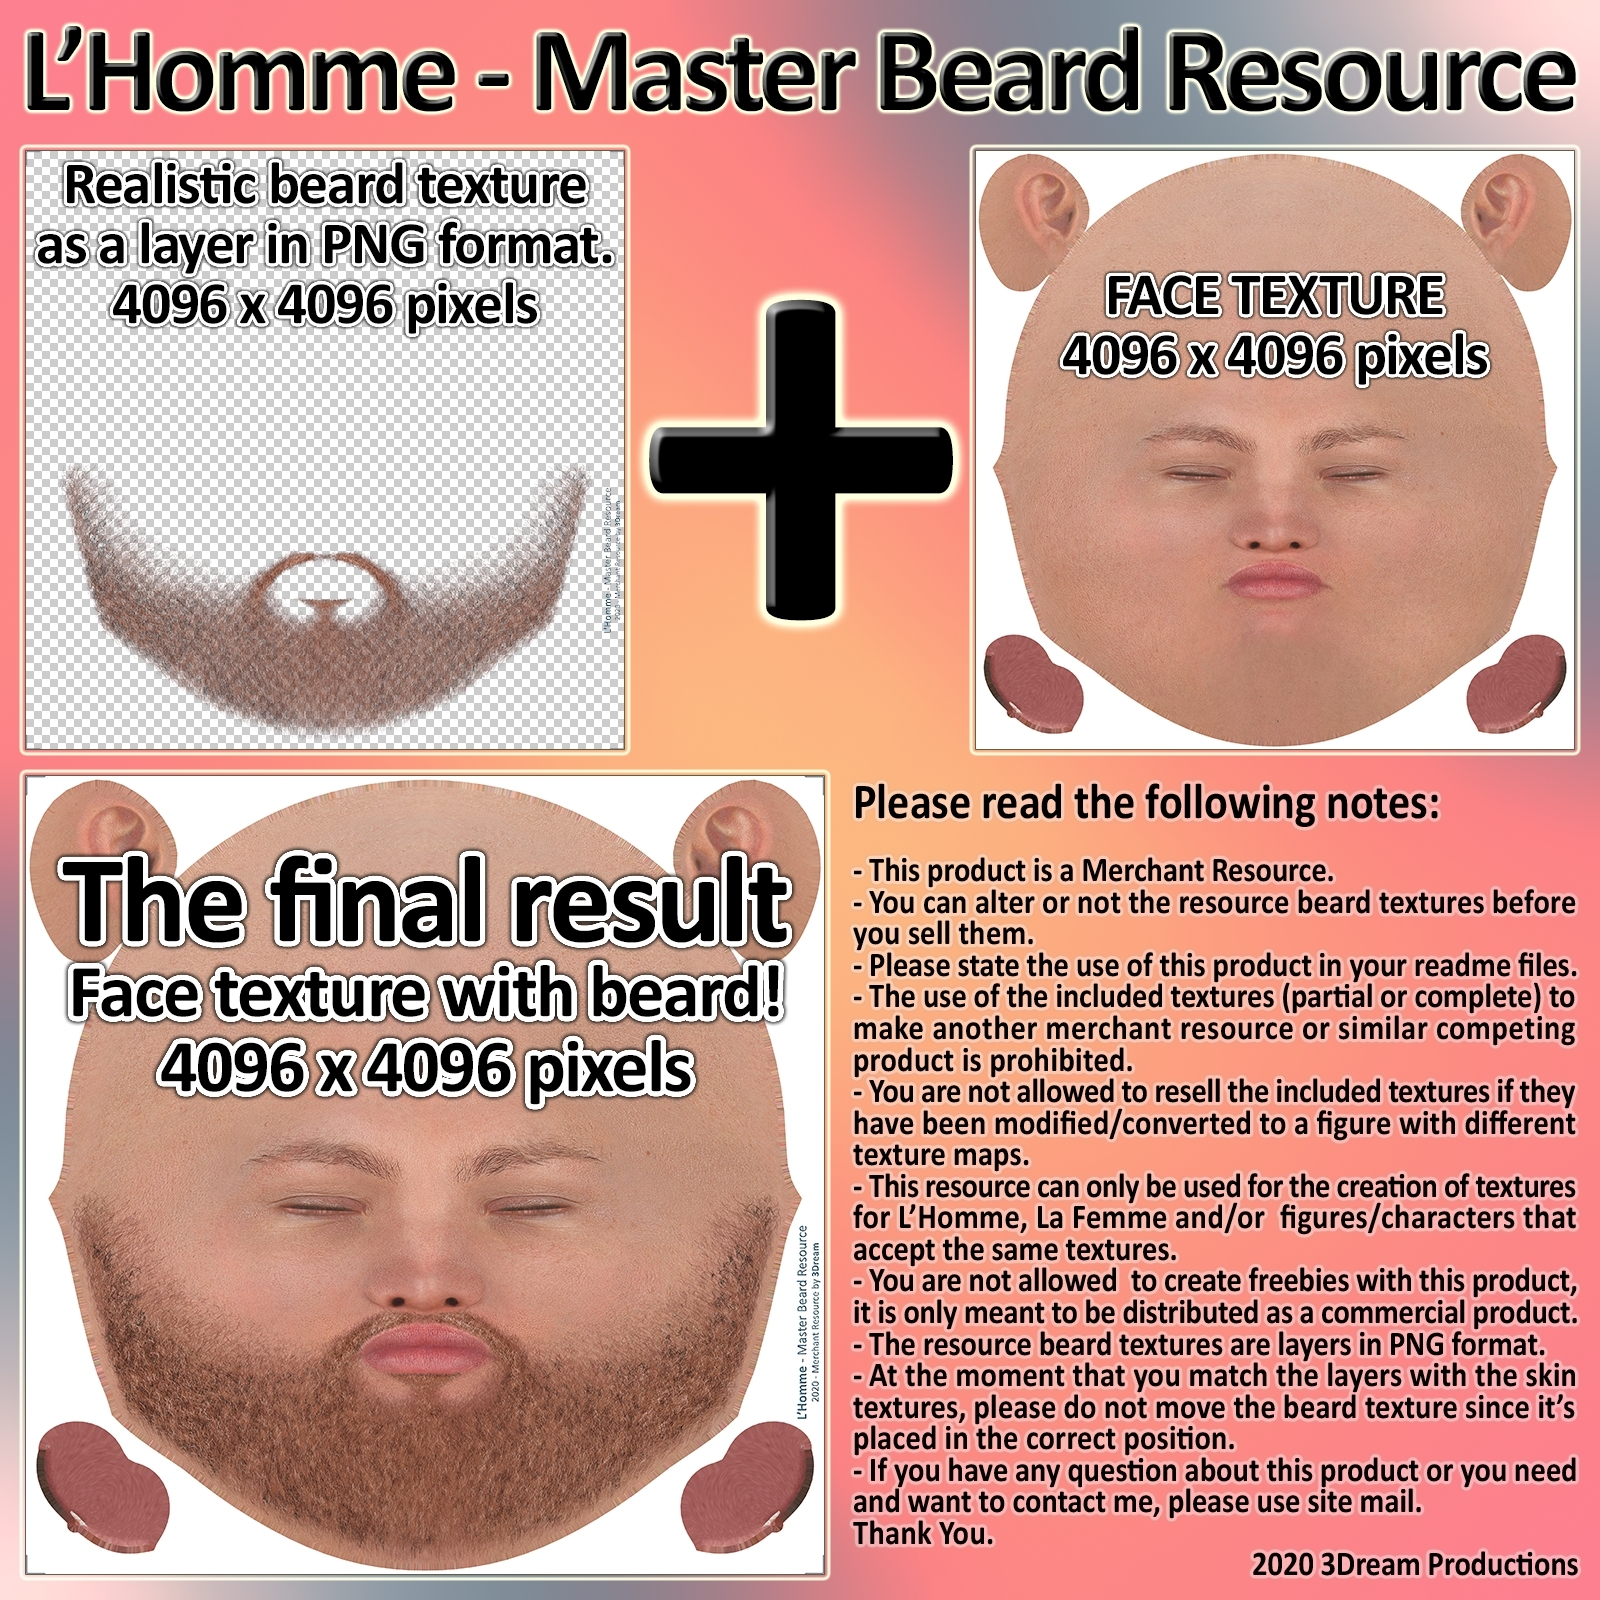 L'Homme - Master Beard Resource by 3Dream